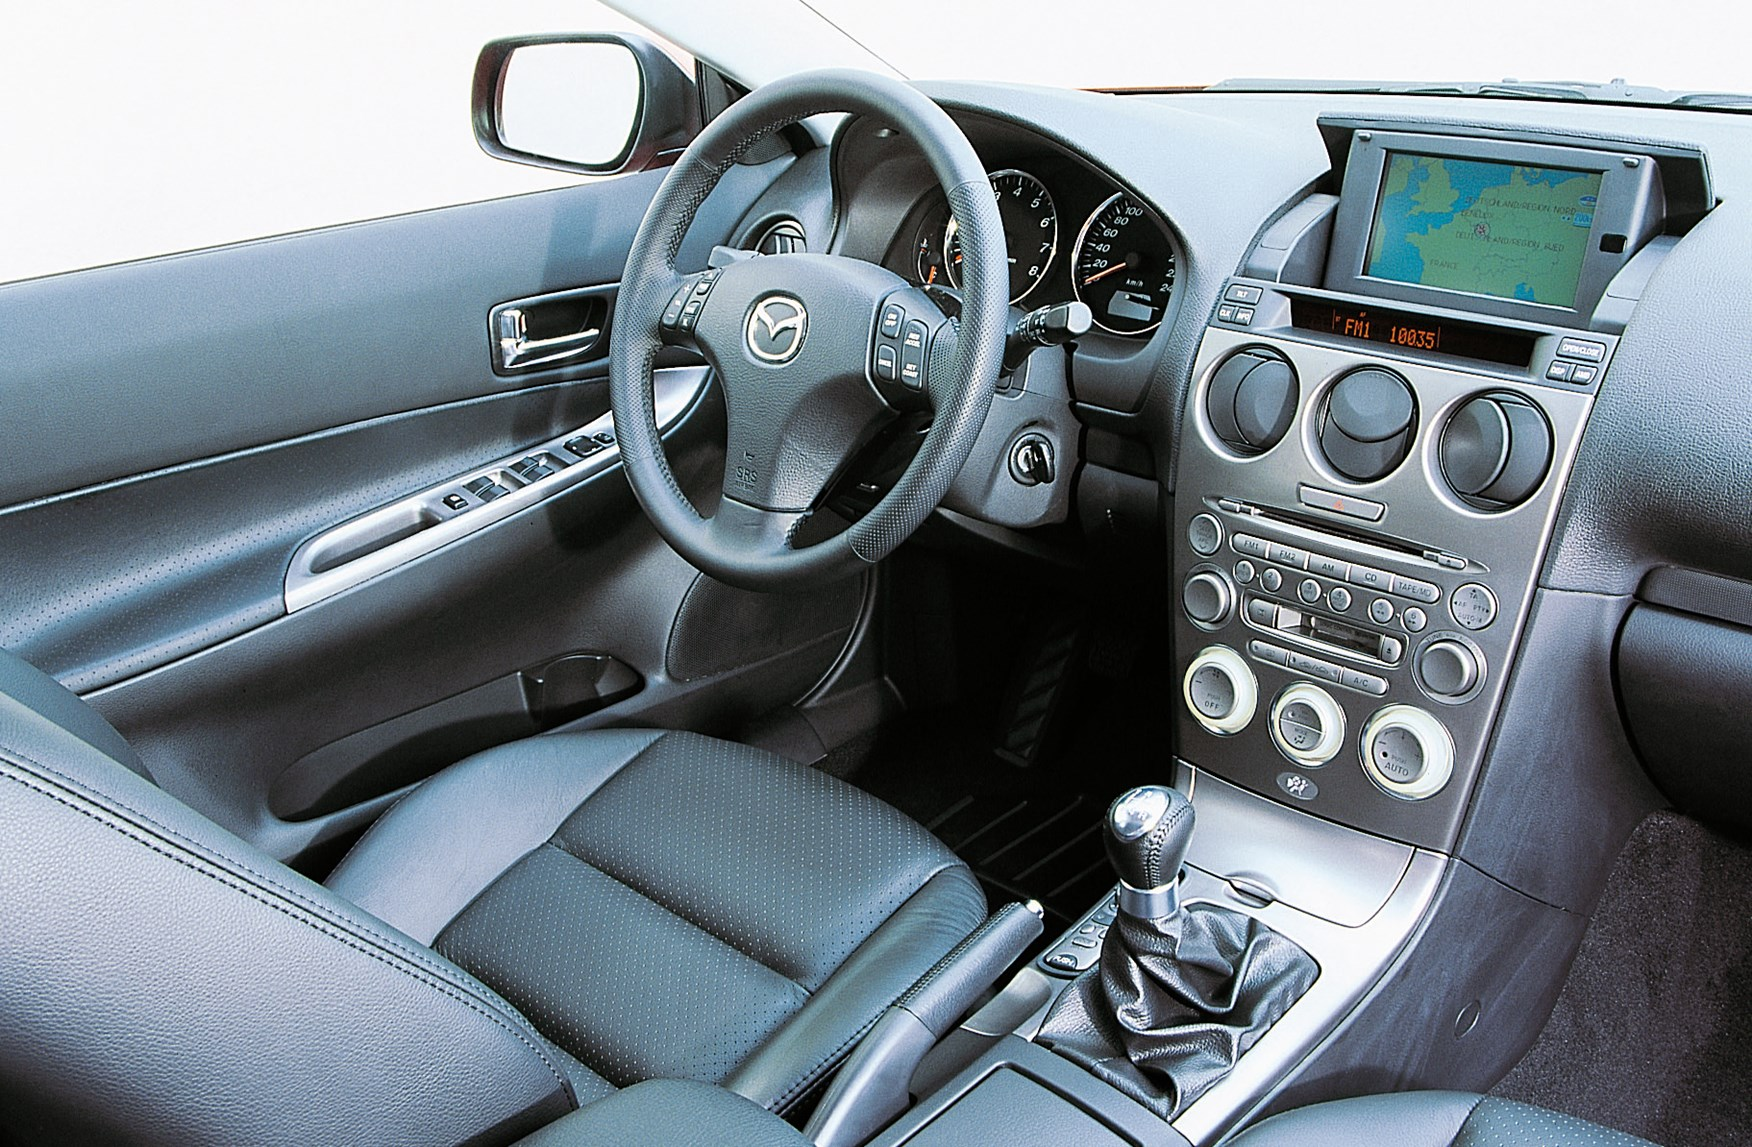 Mazda 6 Hatchback (2002 - 2007) Features, Equipment and Accessories ...